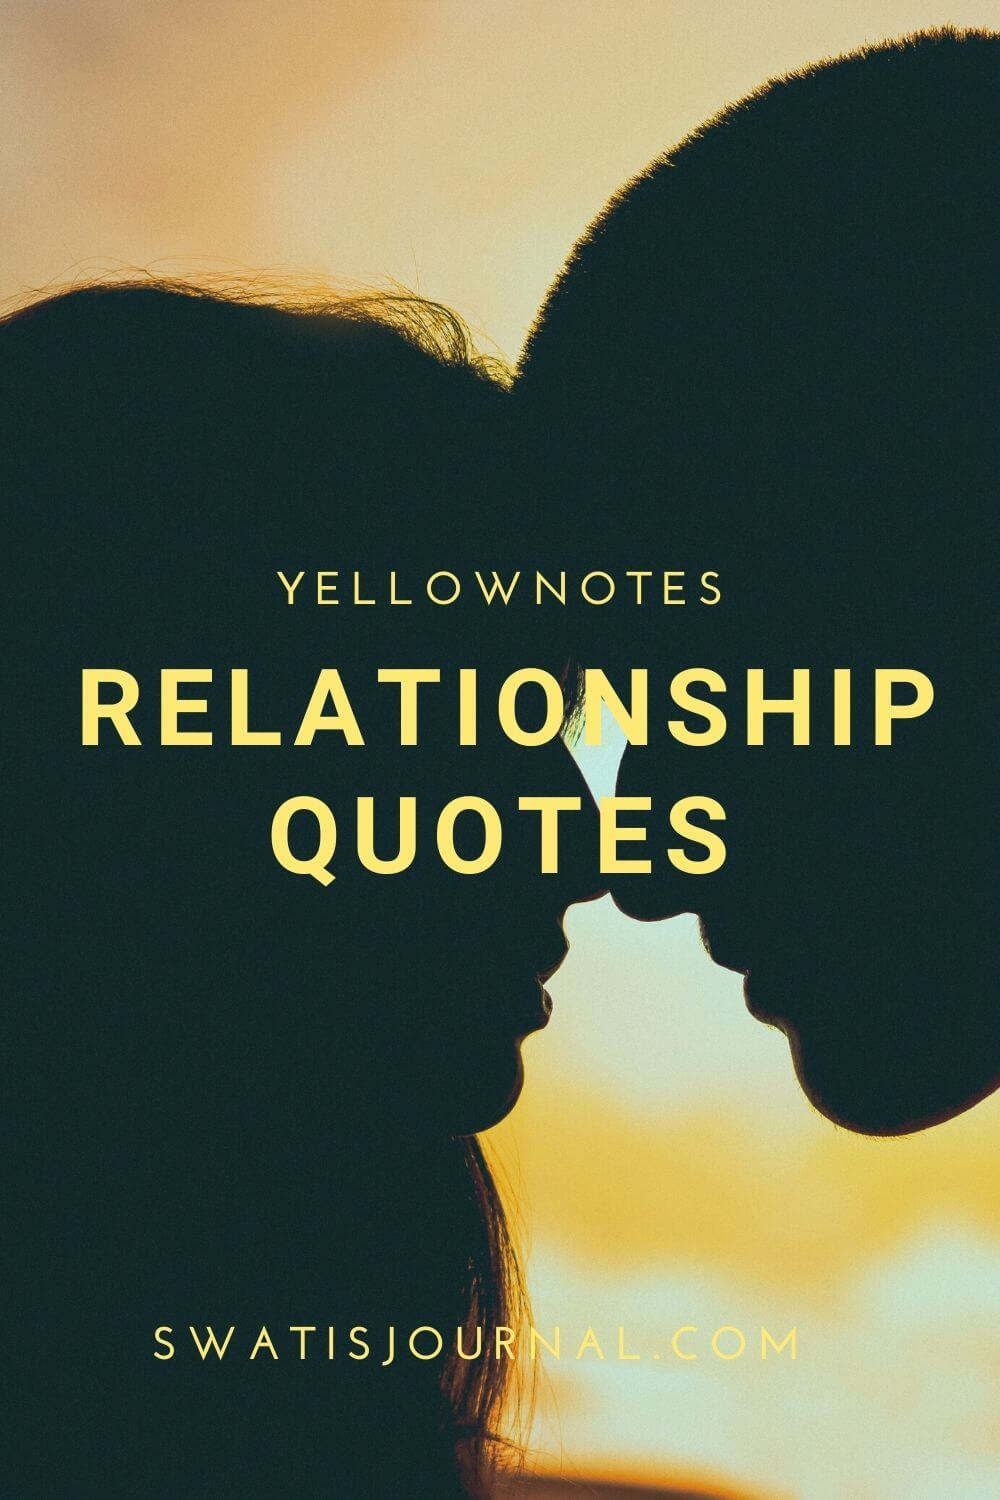 Yellownotes – Daily Quotes | Quote of the Week | July 2020 | Week 03 4.8 (6)